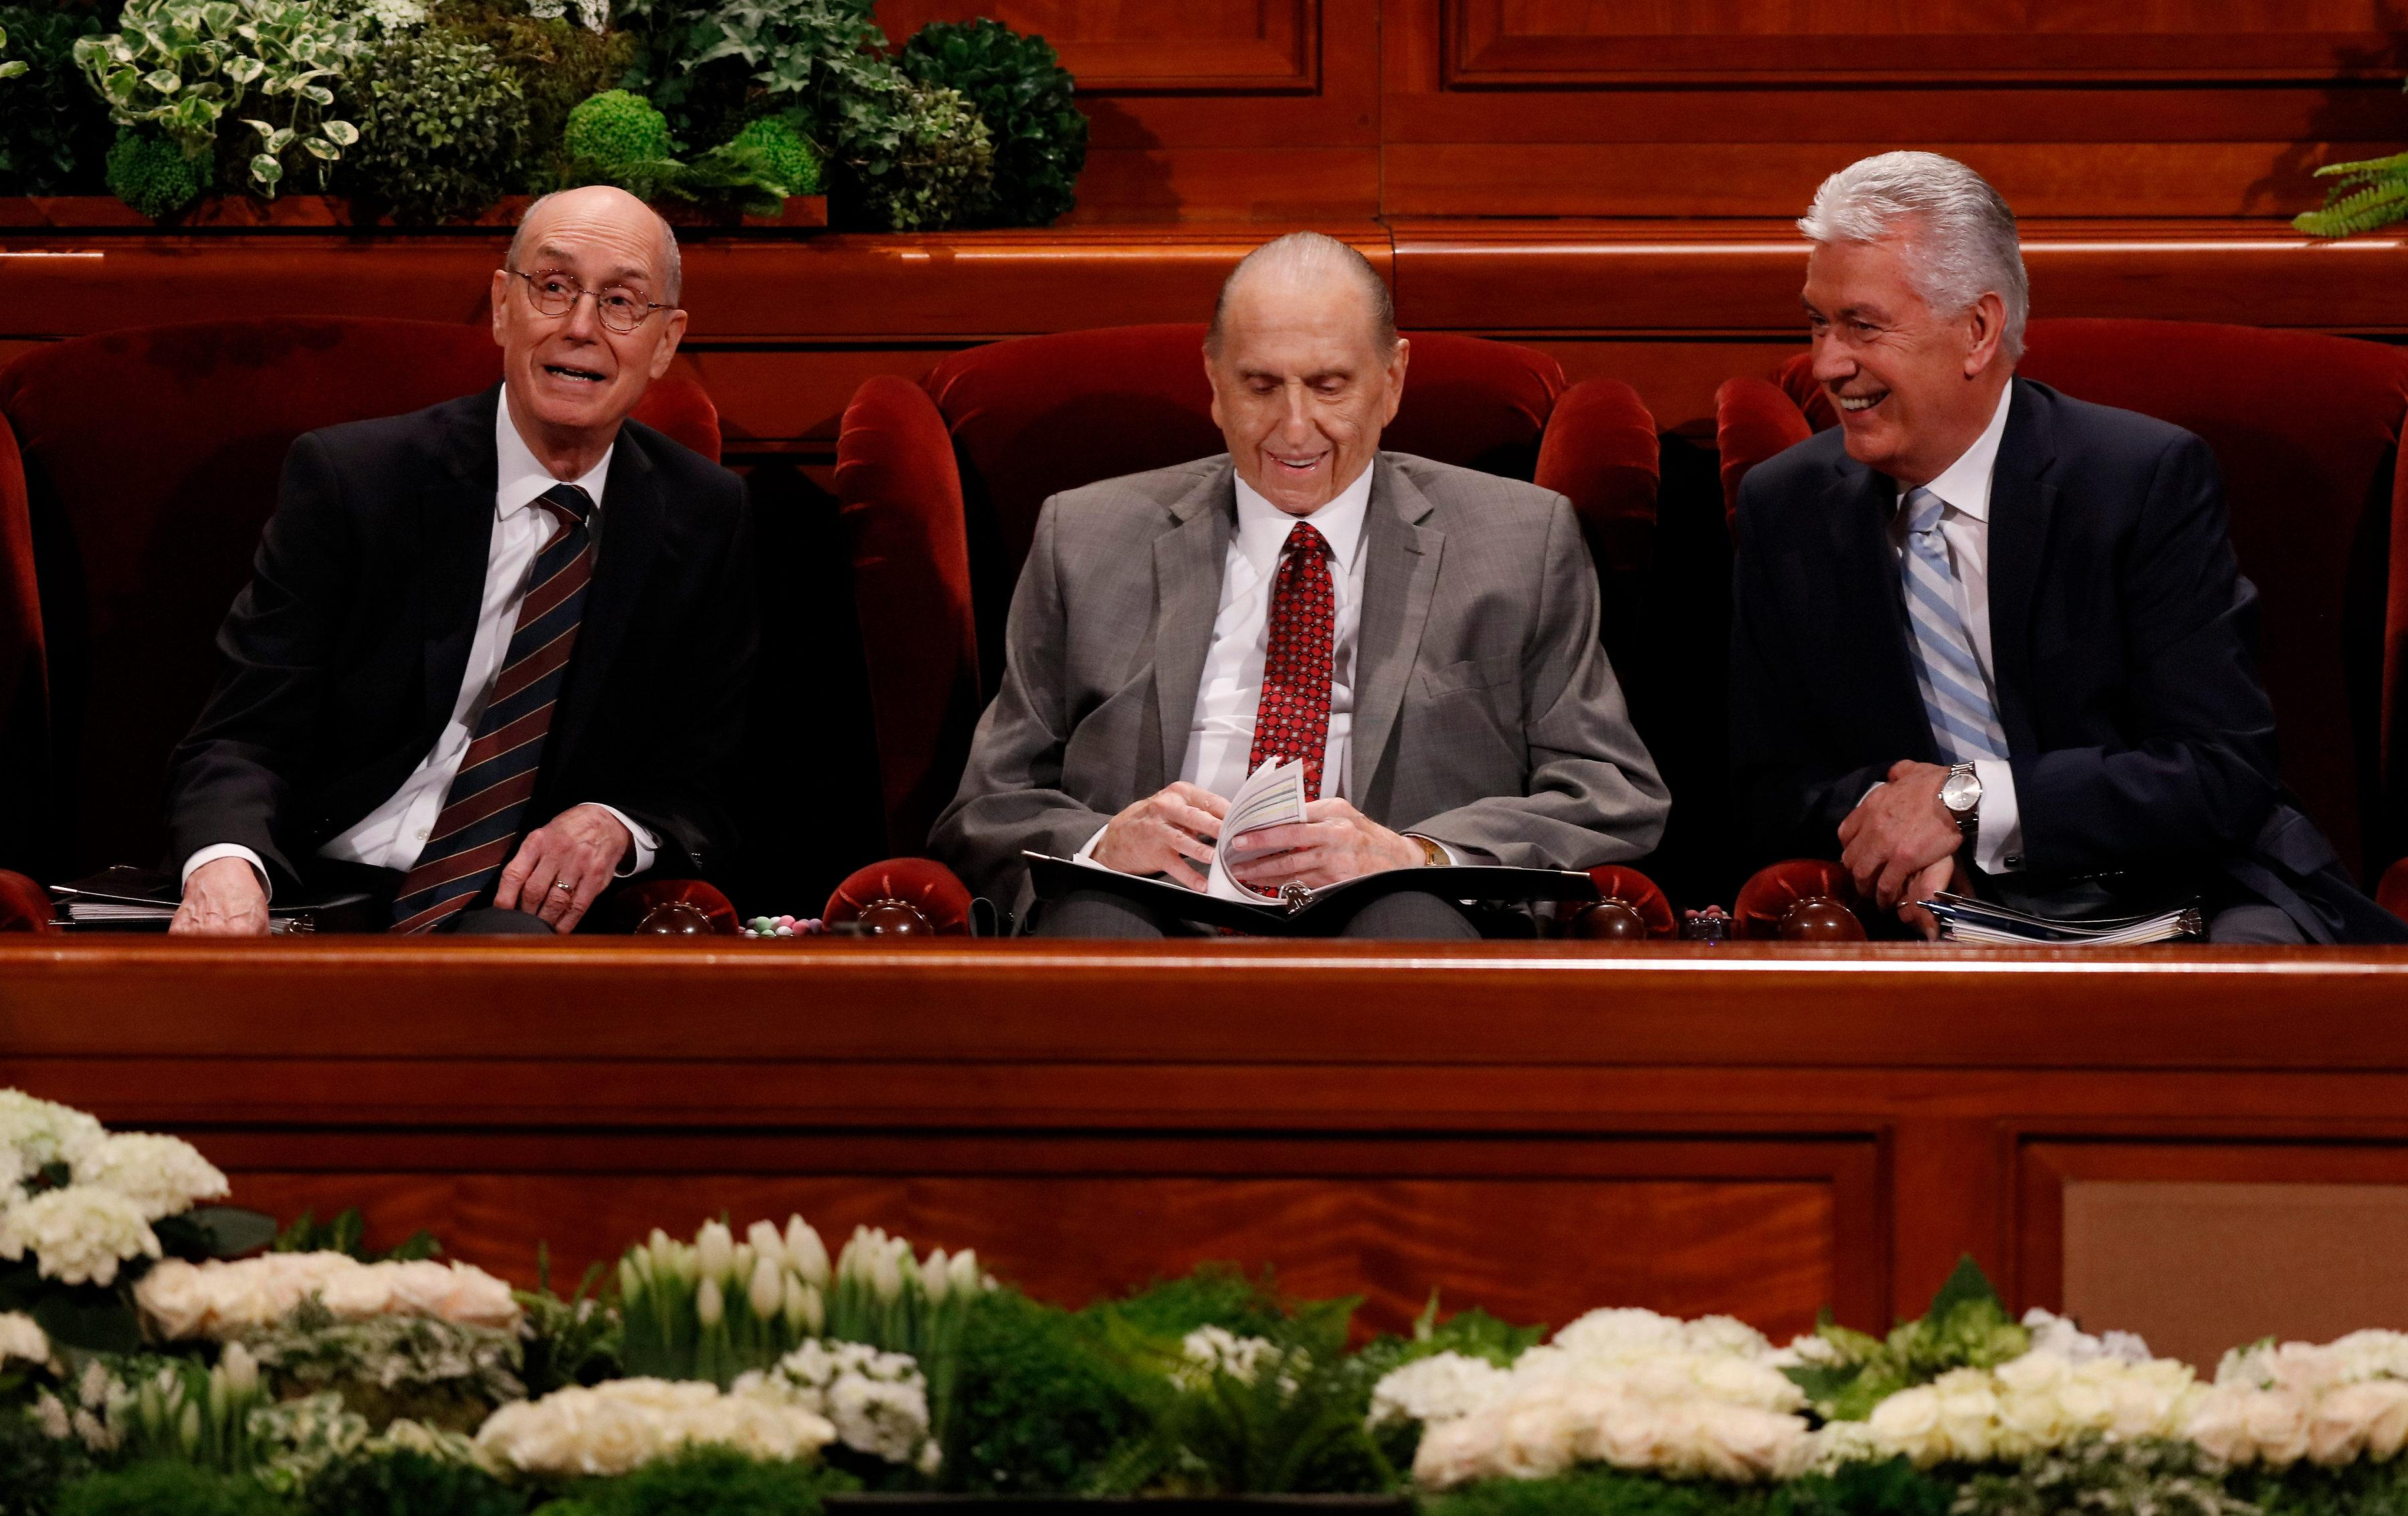 The First Presidency of The Church of Jesus Christ of Latter-day Saints at the Saturday morning session of the faith's 187th Annual General Conference. (Photo: MormonNewsroom.org){&amp;nbsp;}<p></p>